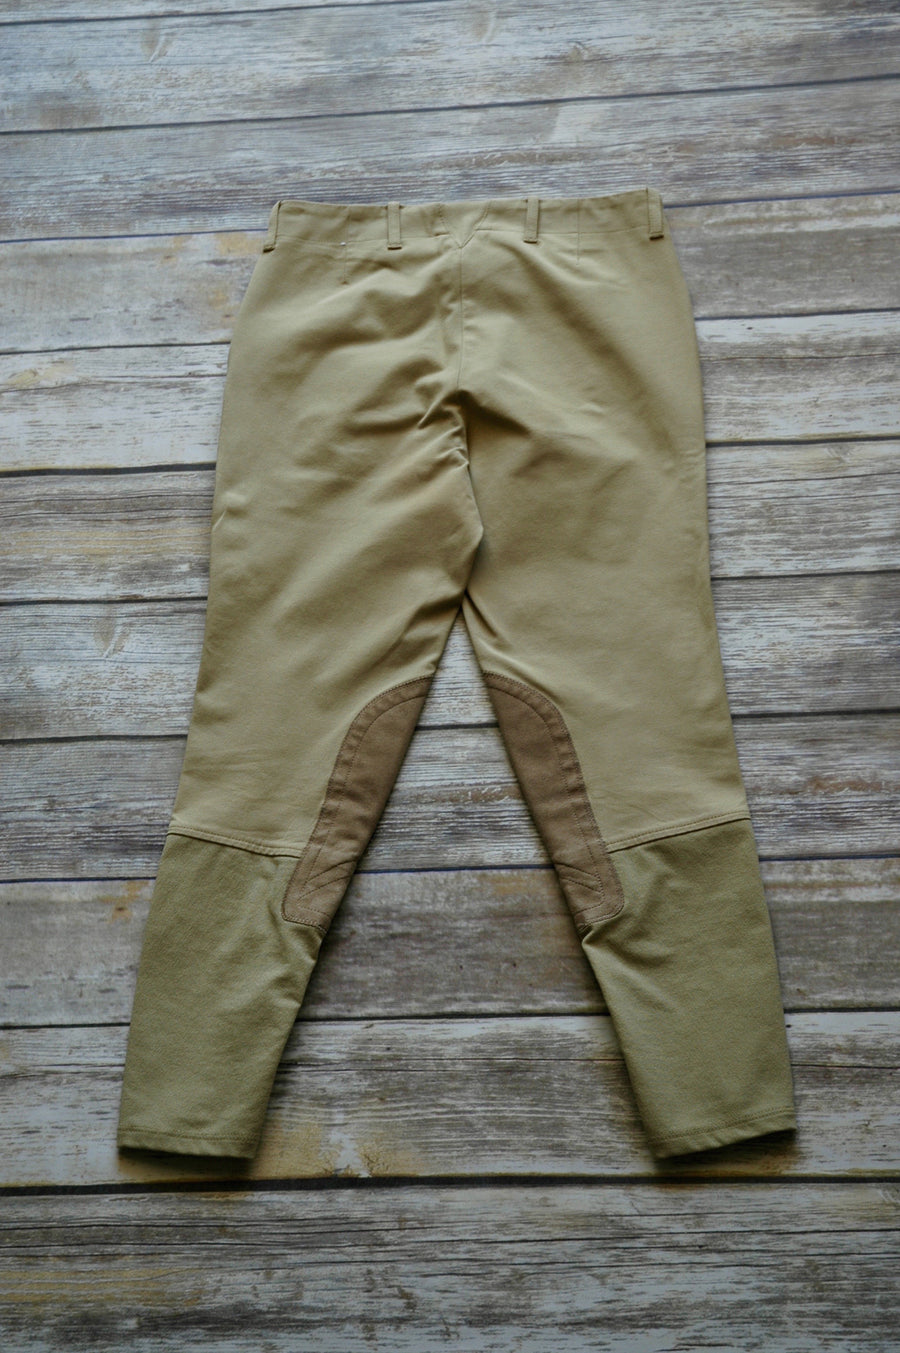 Ariat Side Zip Khaki Breeches - Back View